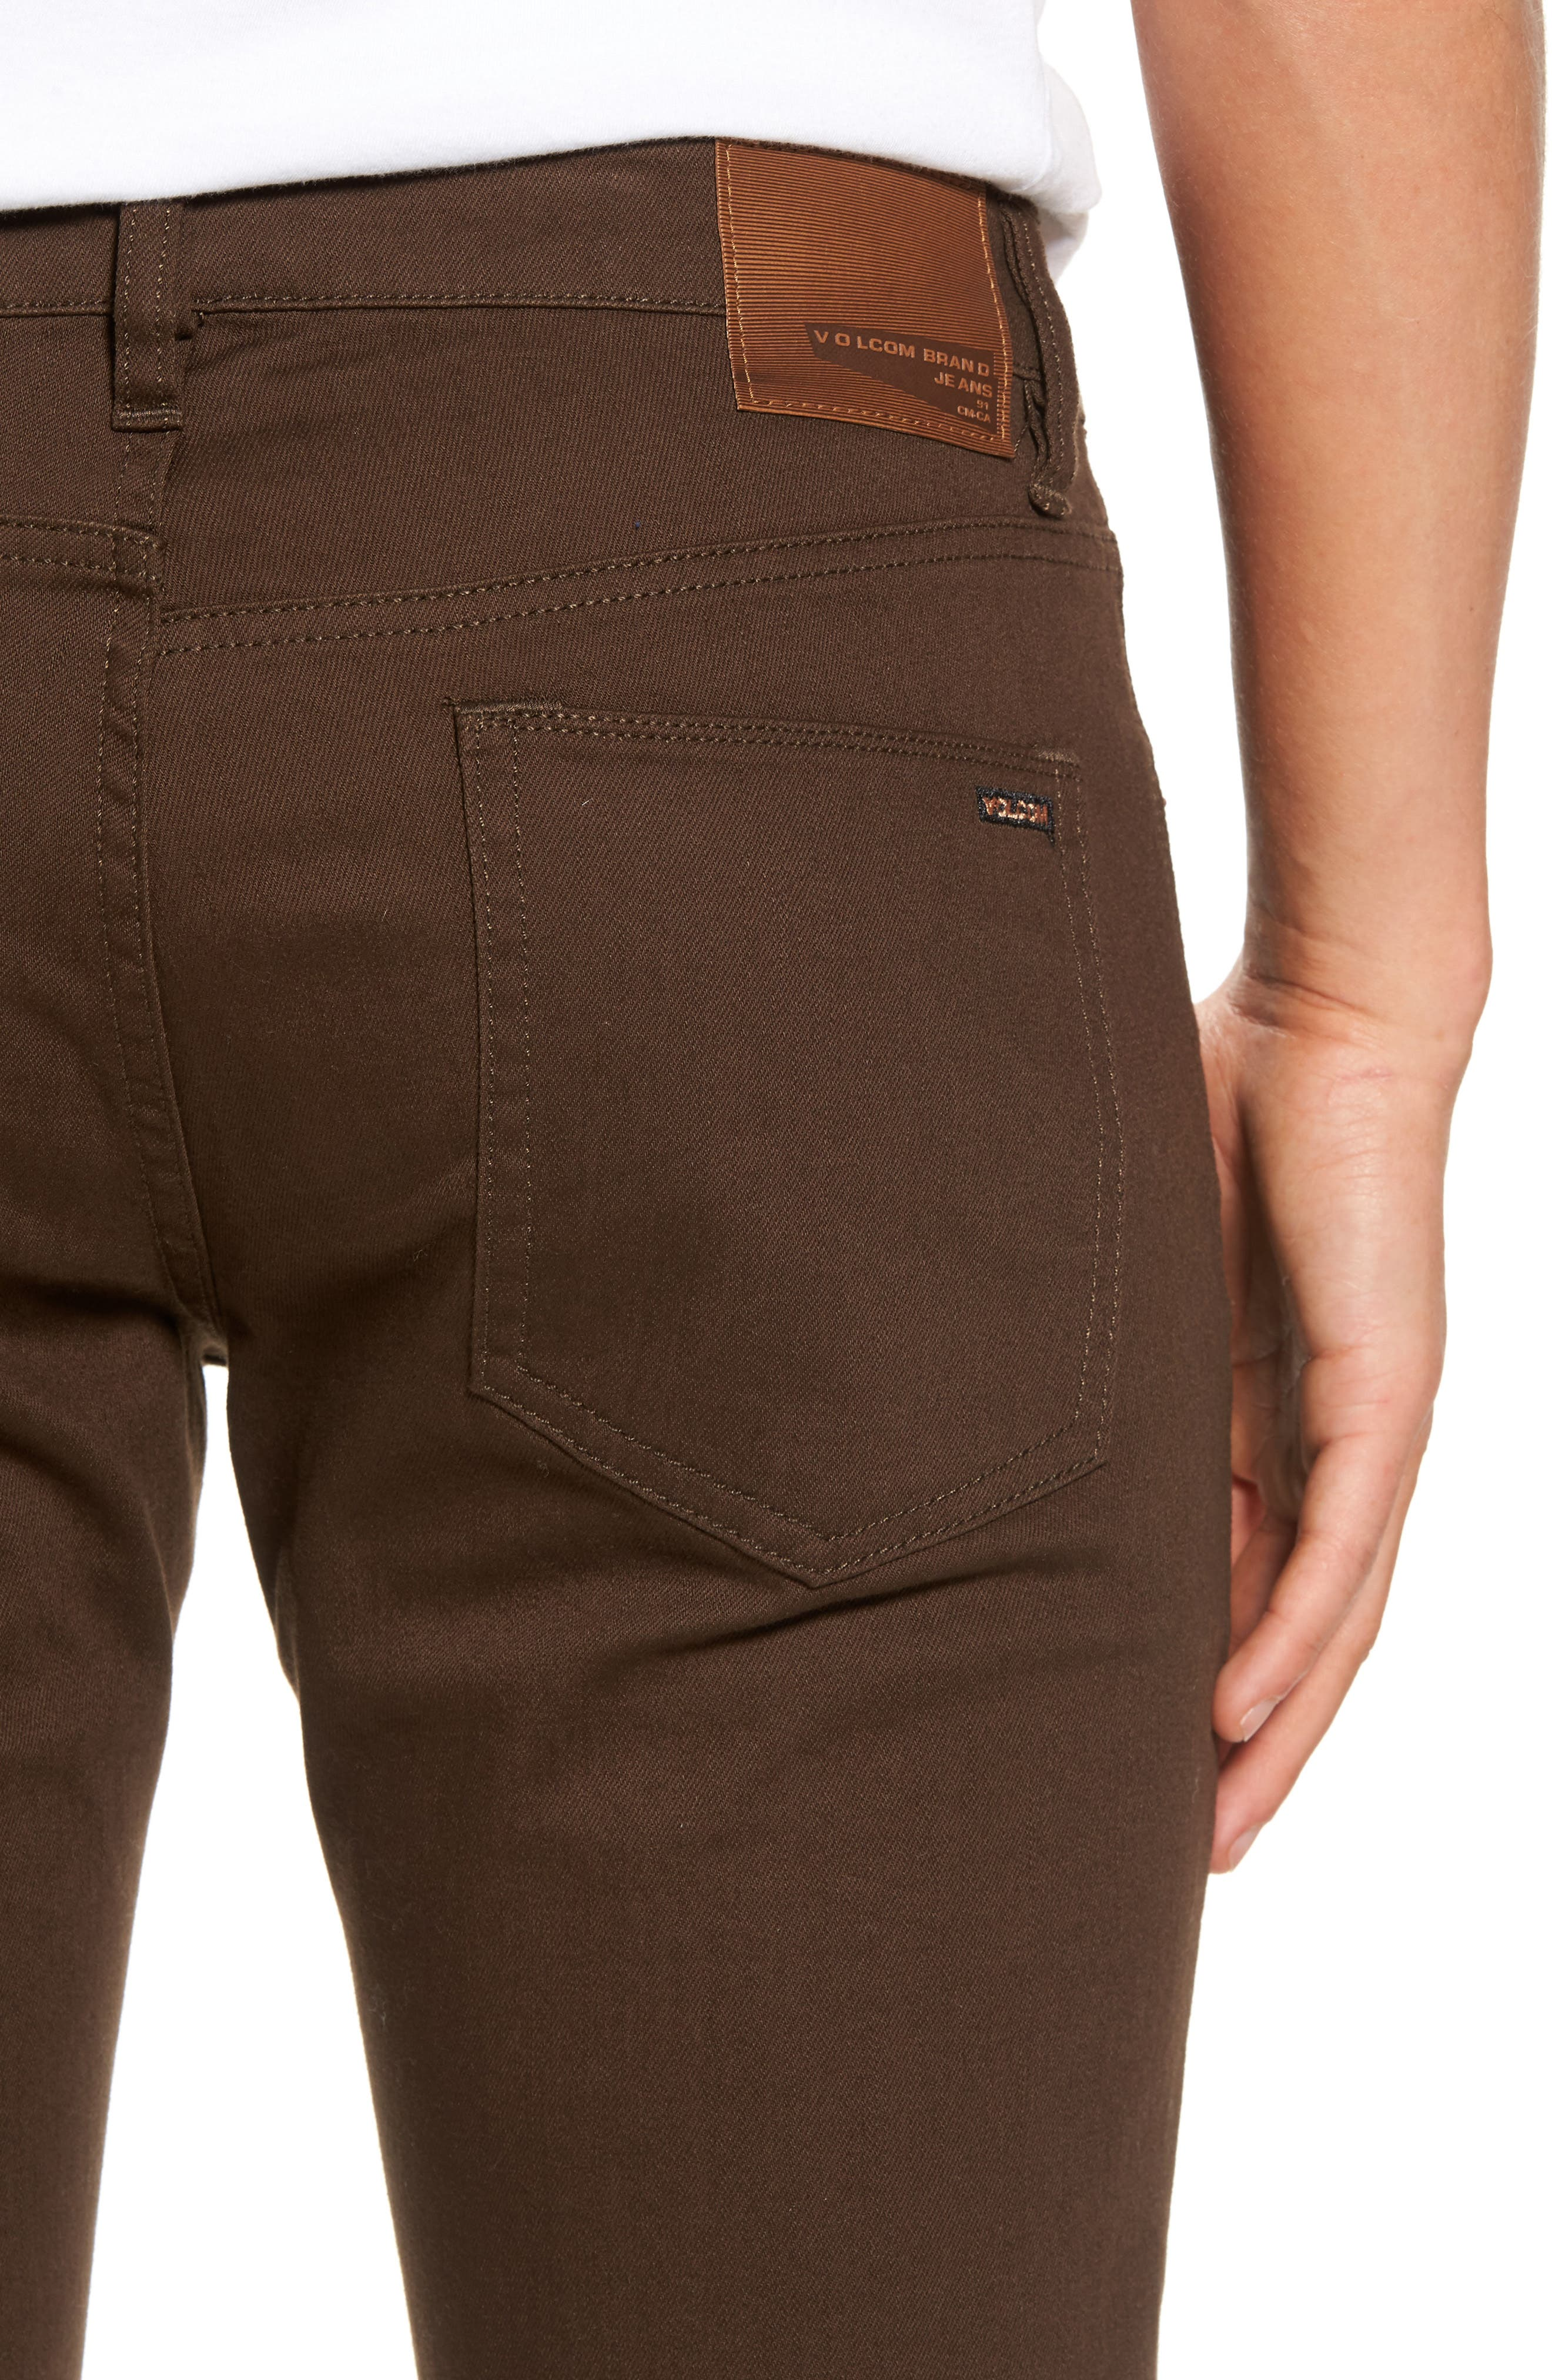 Vorta Slub Pants,                             Alternate thumbnail 8, color,